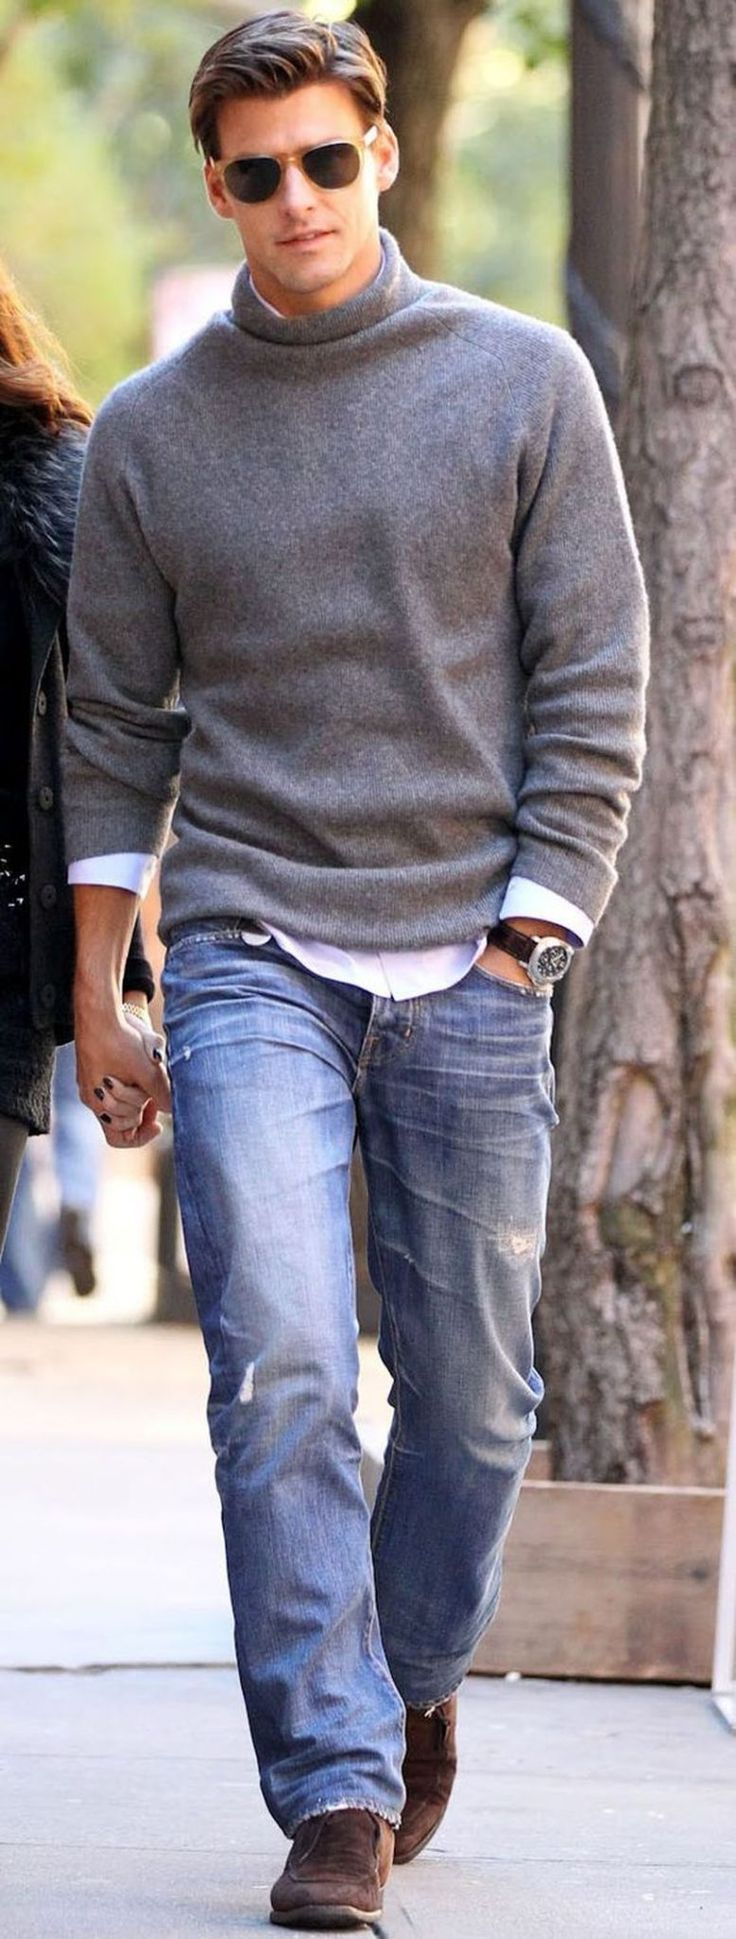 Winter mens men s fall fall autumn pre fall denim winter jeans - 40 Cool Men Sweater Outfits Ideas That Worth To Try Mens Sweater Outfitsmen Sweaterman Outfitstriped Shirtsmen S Fall Fashionwinter